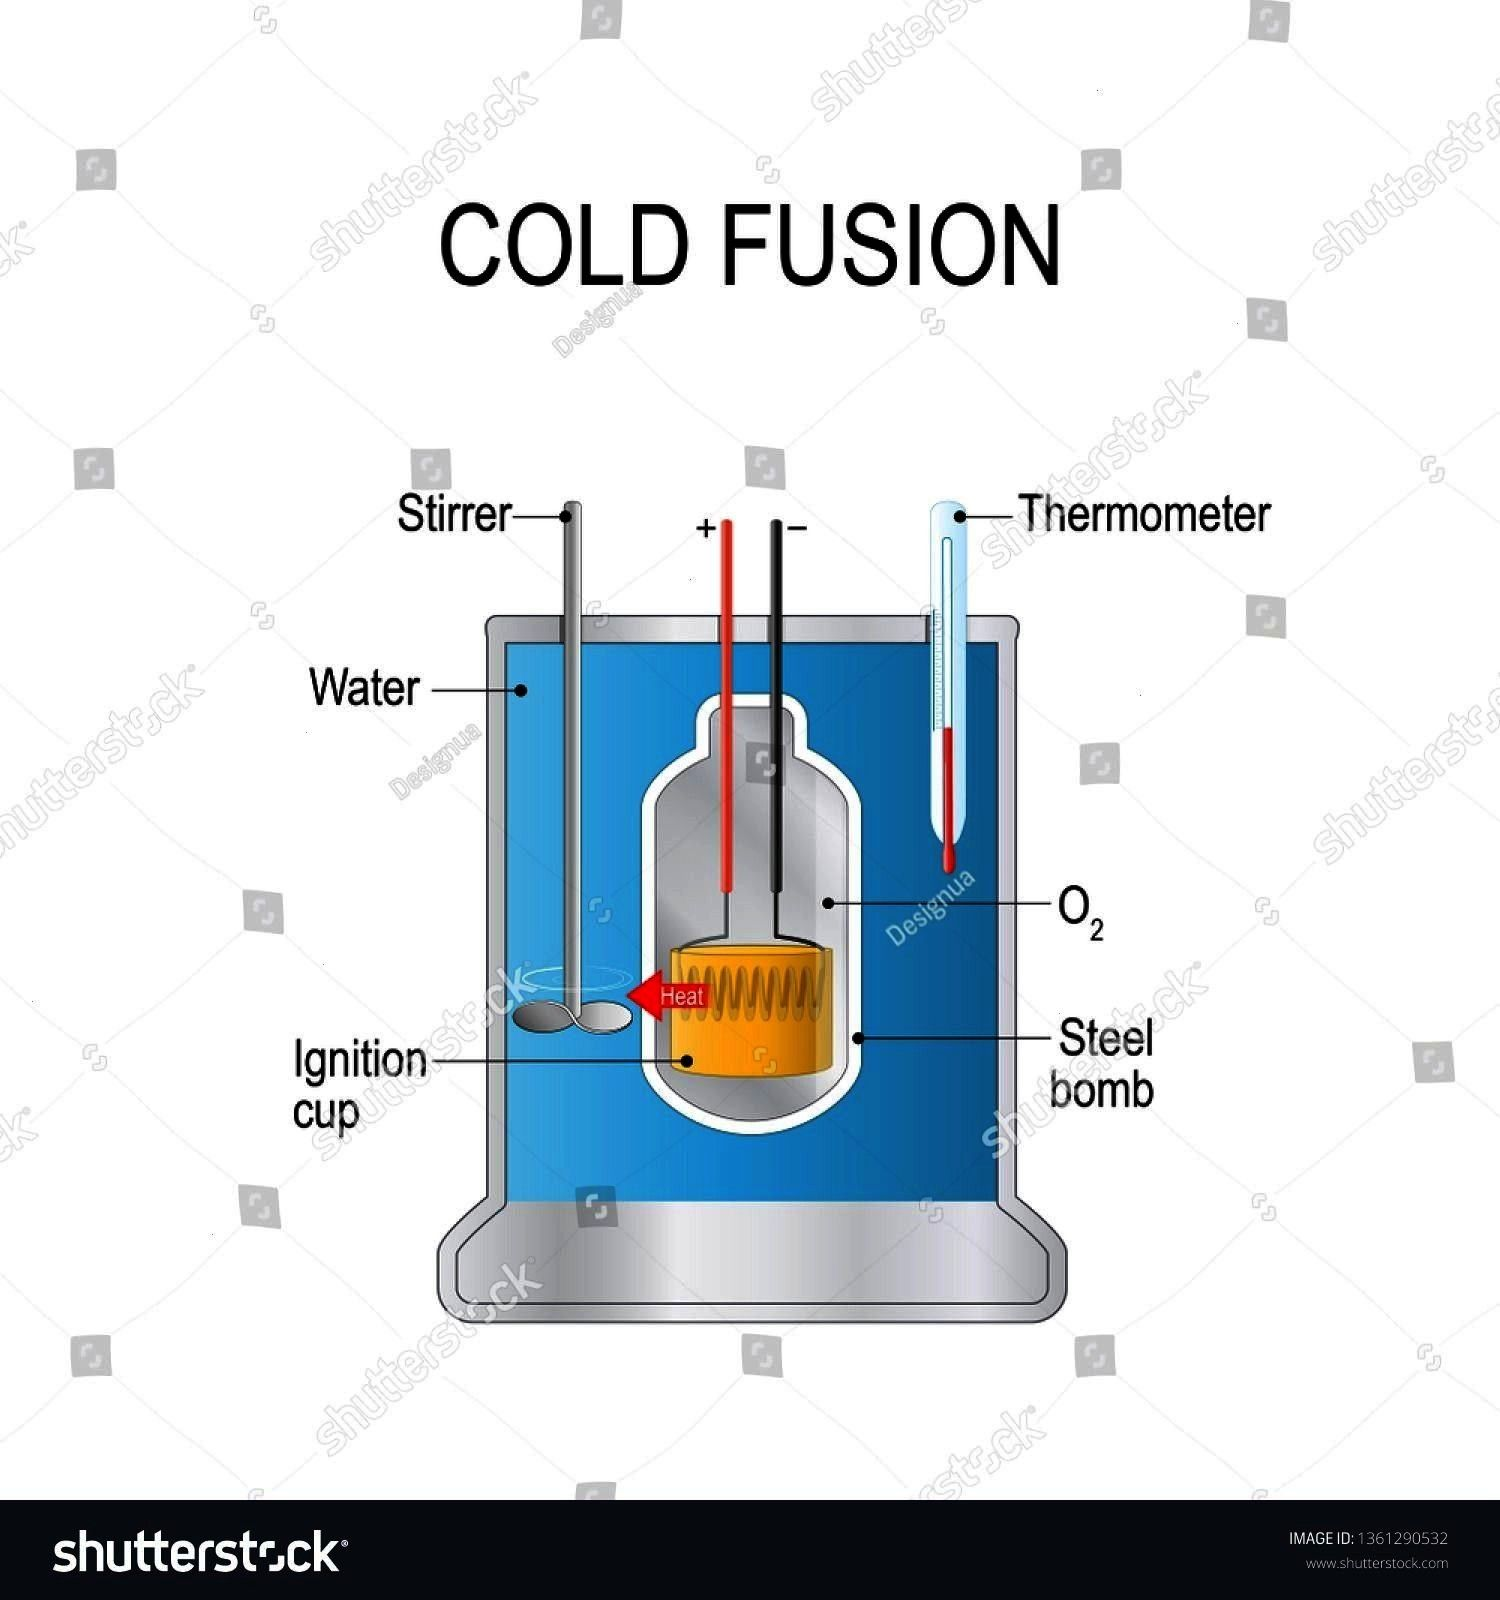 type of nuclear reaction theoretical model of calorimeter Electrolysis cell diagram for educational physical chemistry and science use Cold fusion hypothesized type of nu...